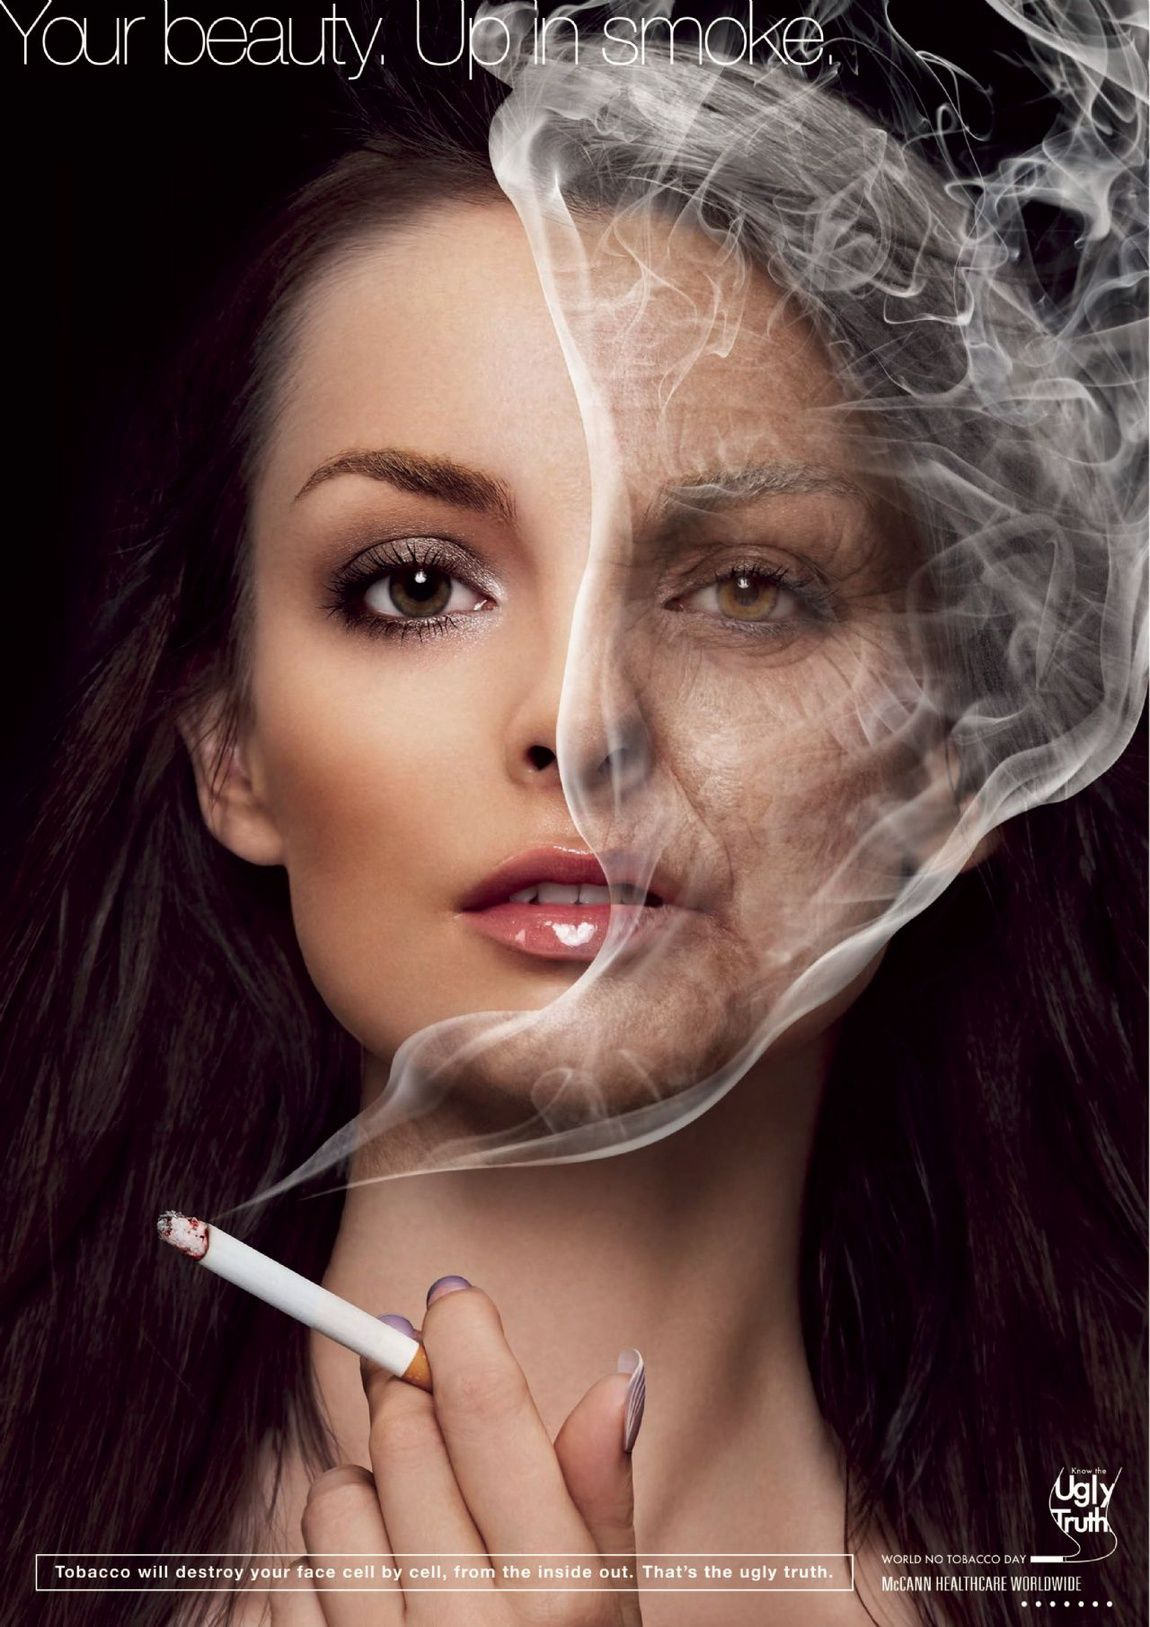 Campaign for the World No Tobacco Day 2010. Your beauty - up in smoke #healthcareadvertising #dontsmoke